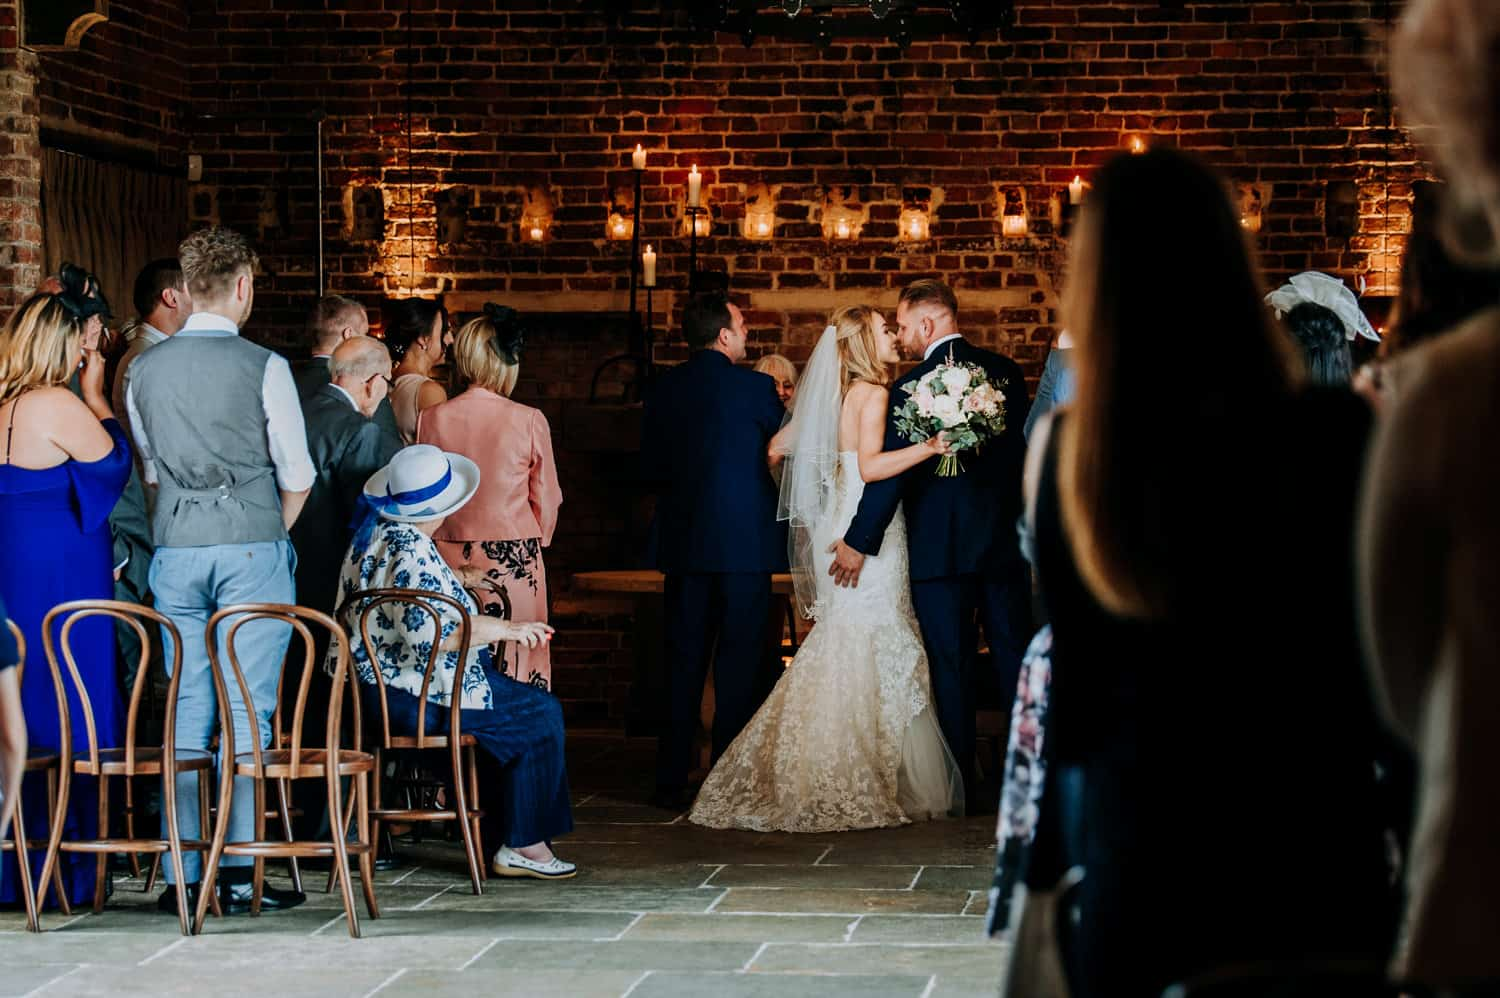 A bride and groom share a kiss at their wedding ceremony in a barn